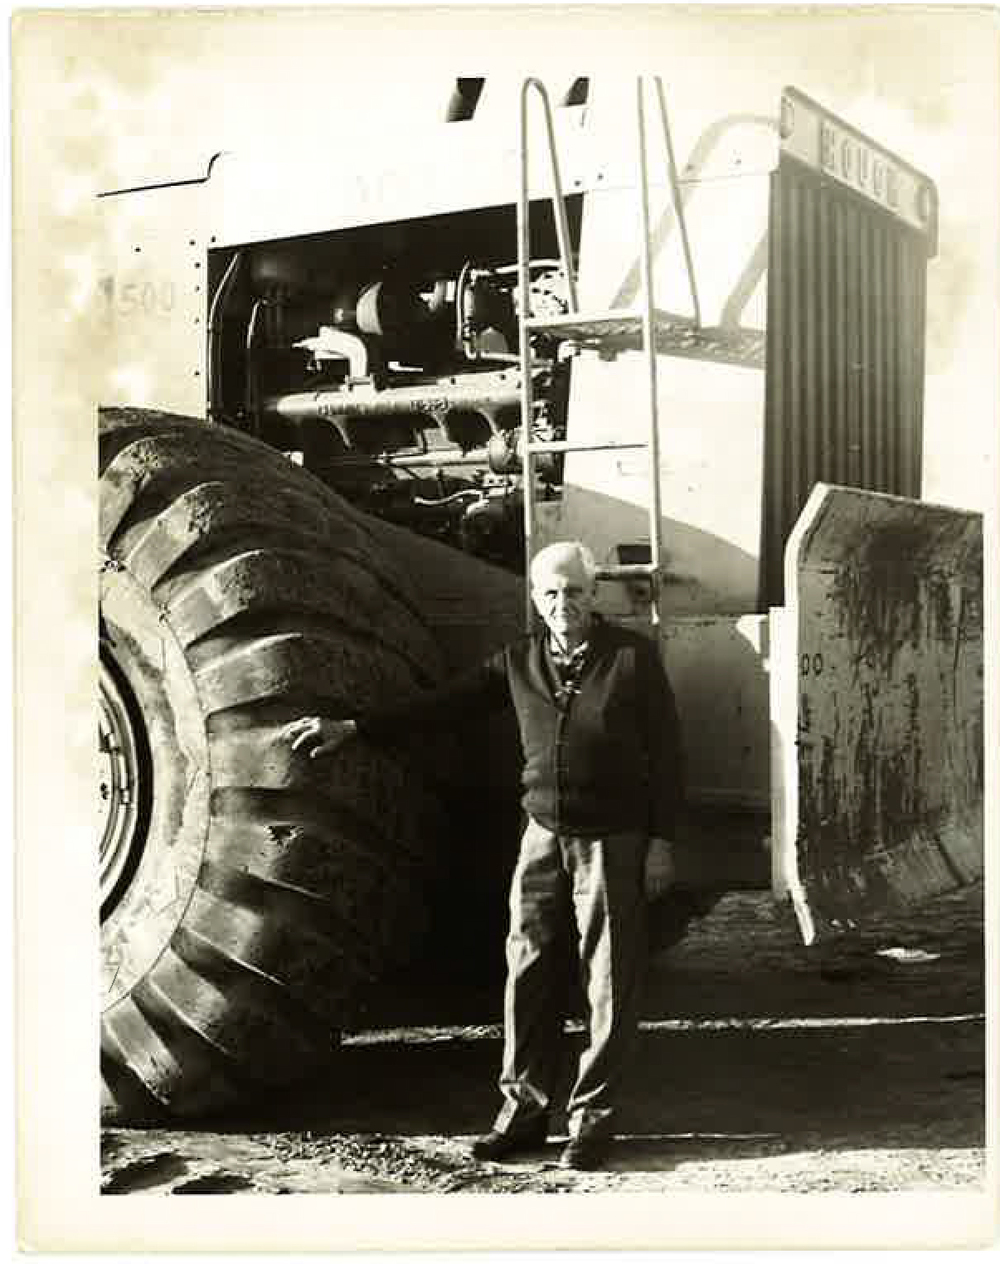 1970: Burt's collection started with his job as a traveling sales and service man for various farm machinery manufacturers. His position allowed him to meet people who saved their family heirlooms and others that just had some interesting seeds